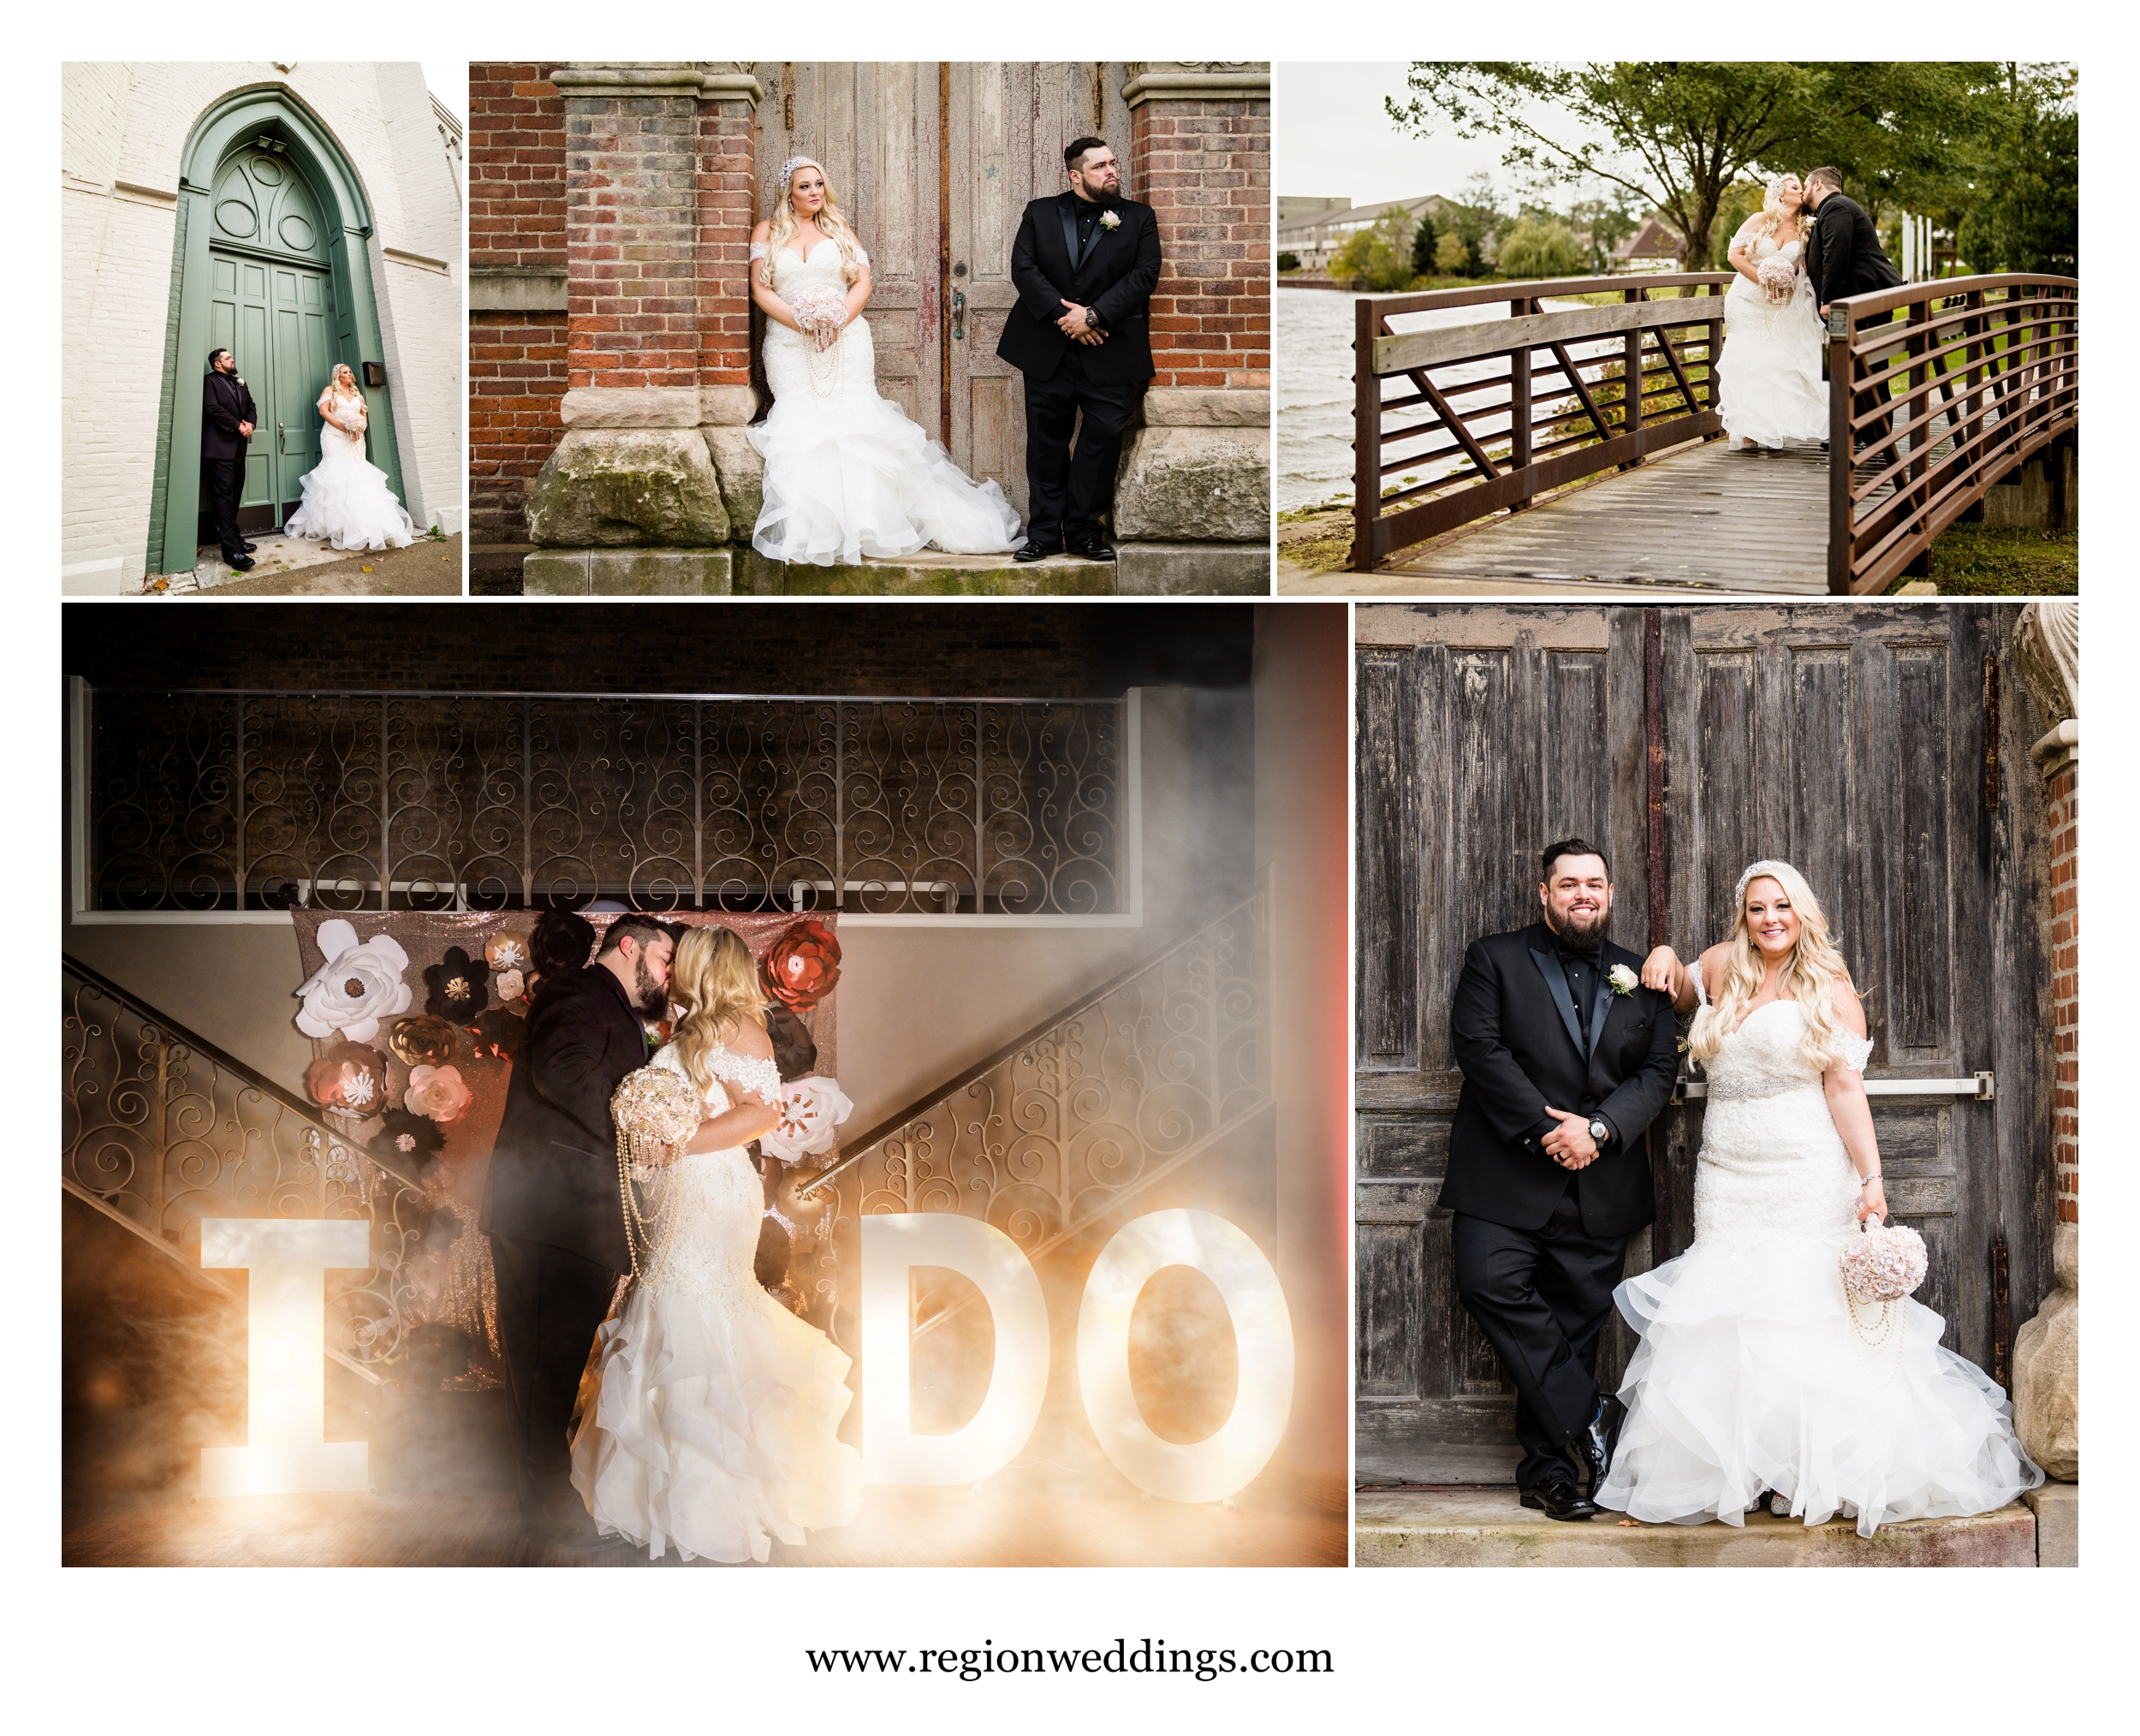 Wedding photos in downtown Laporte, Indiana.